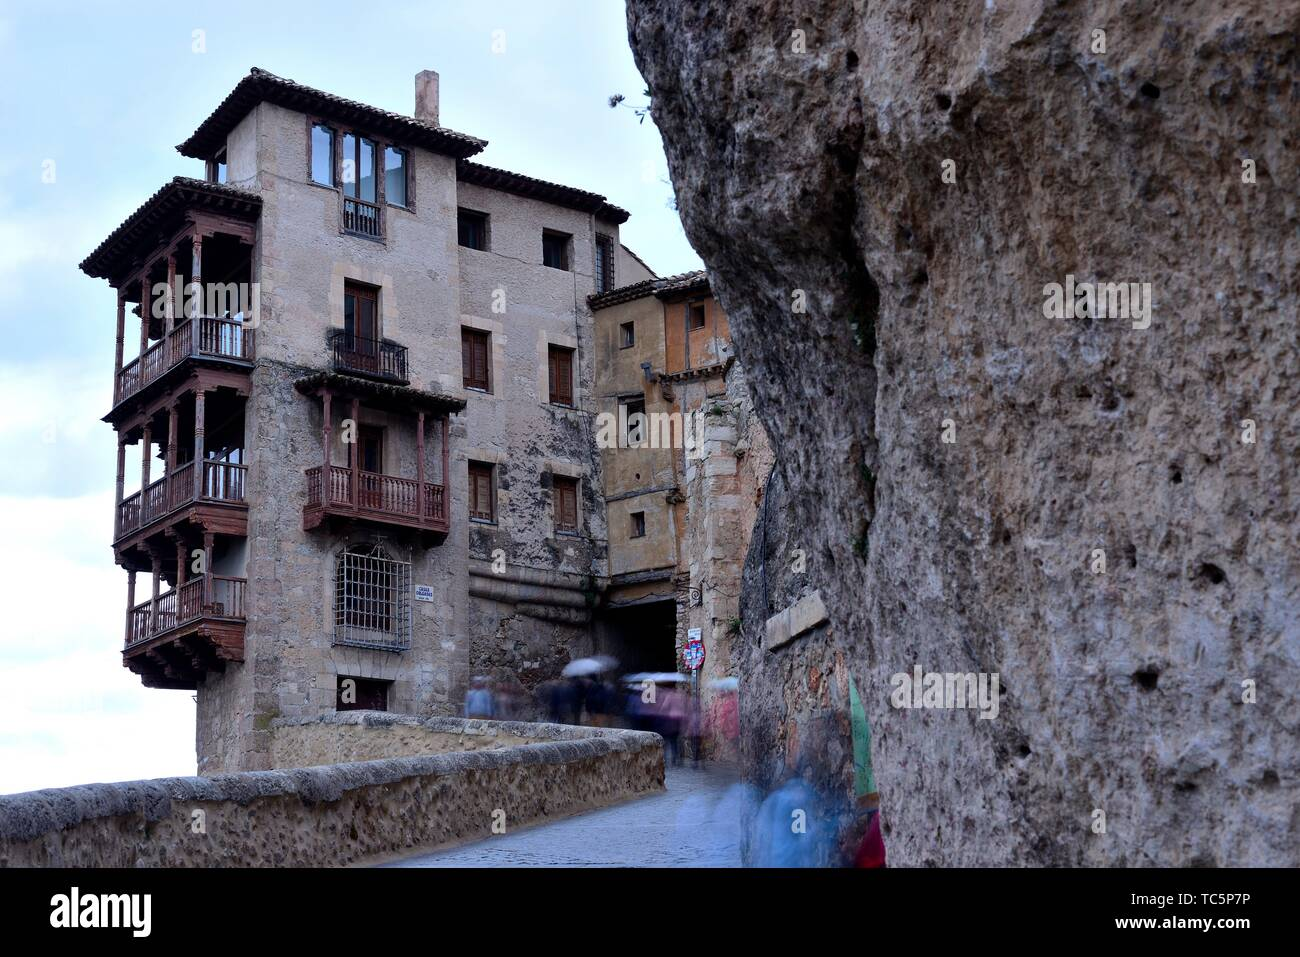 Customary houses of Cuenca, Spain. - Stock Image